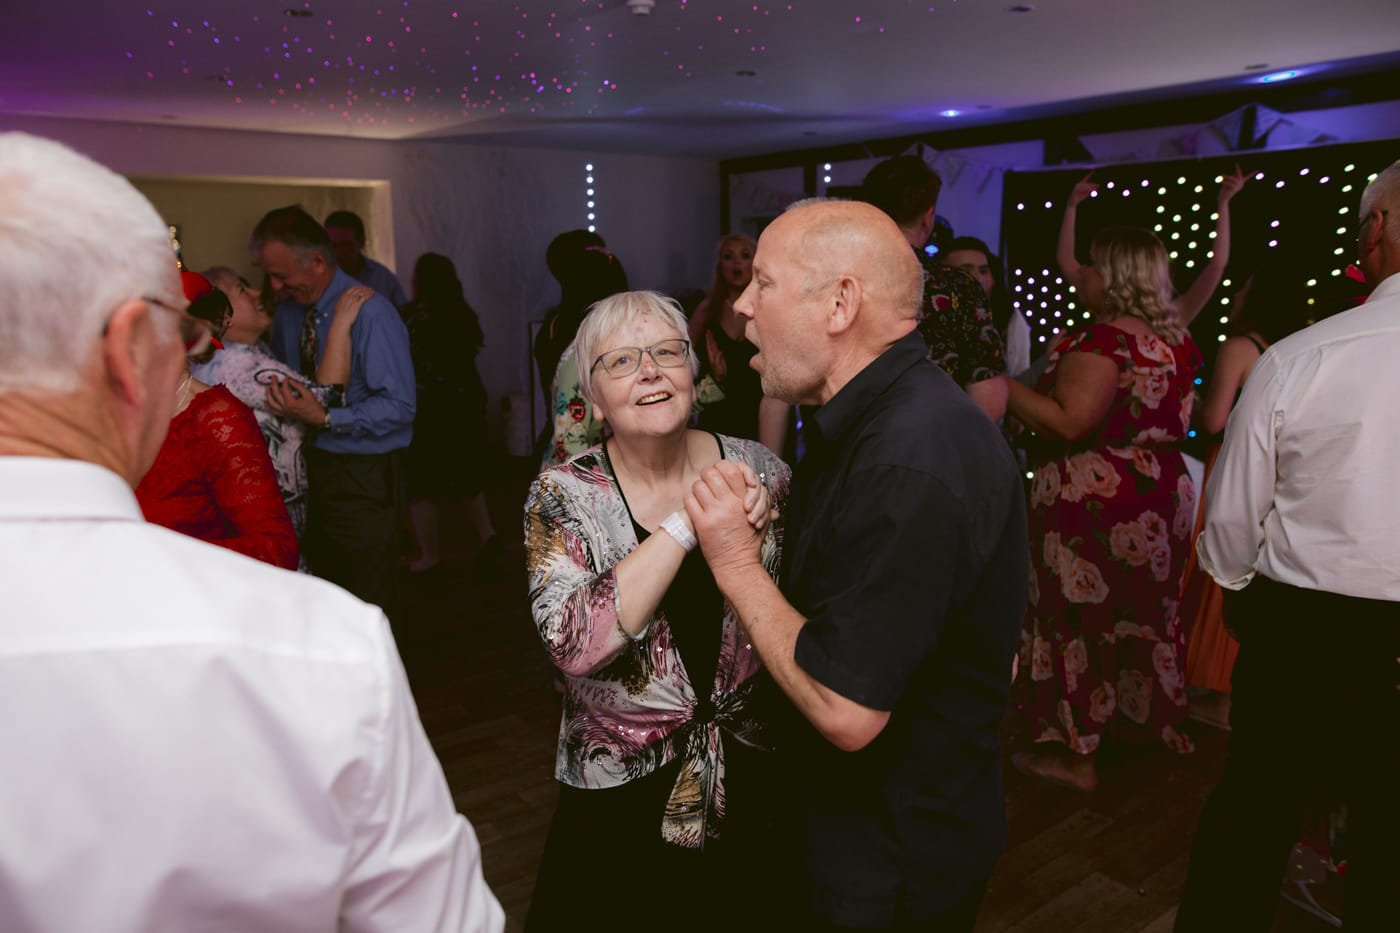 Older Couple Dancing with Guests Portrait